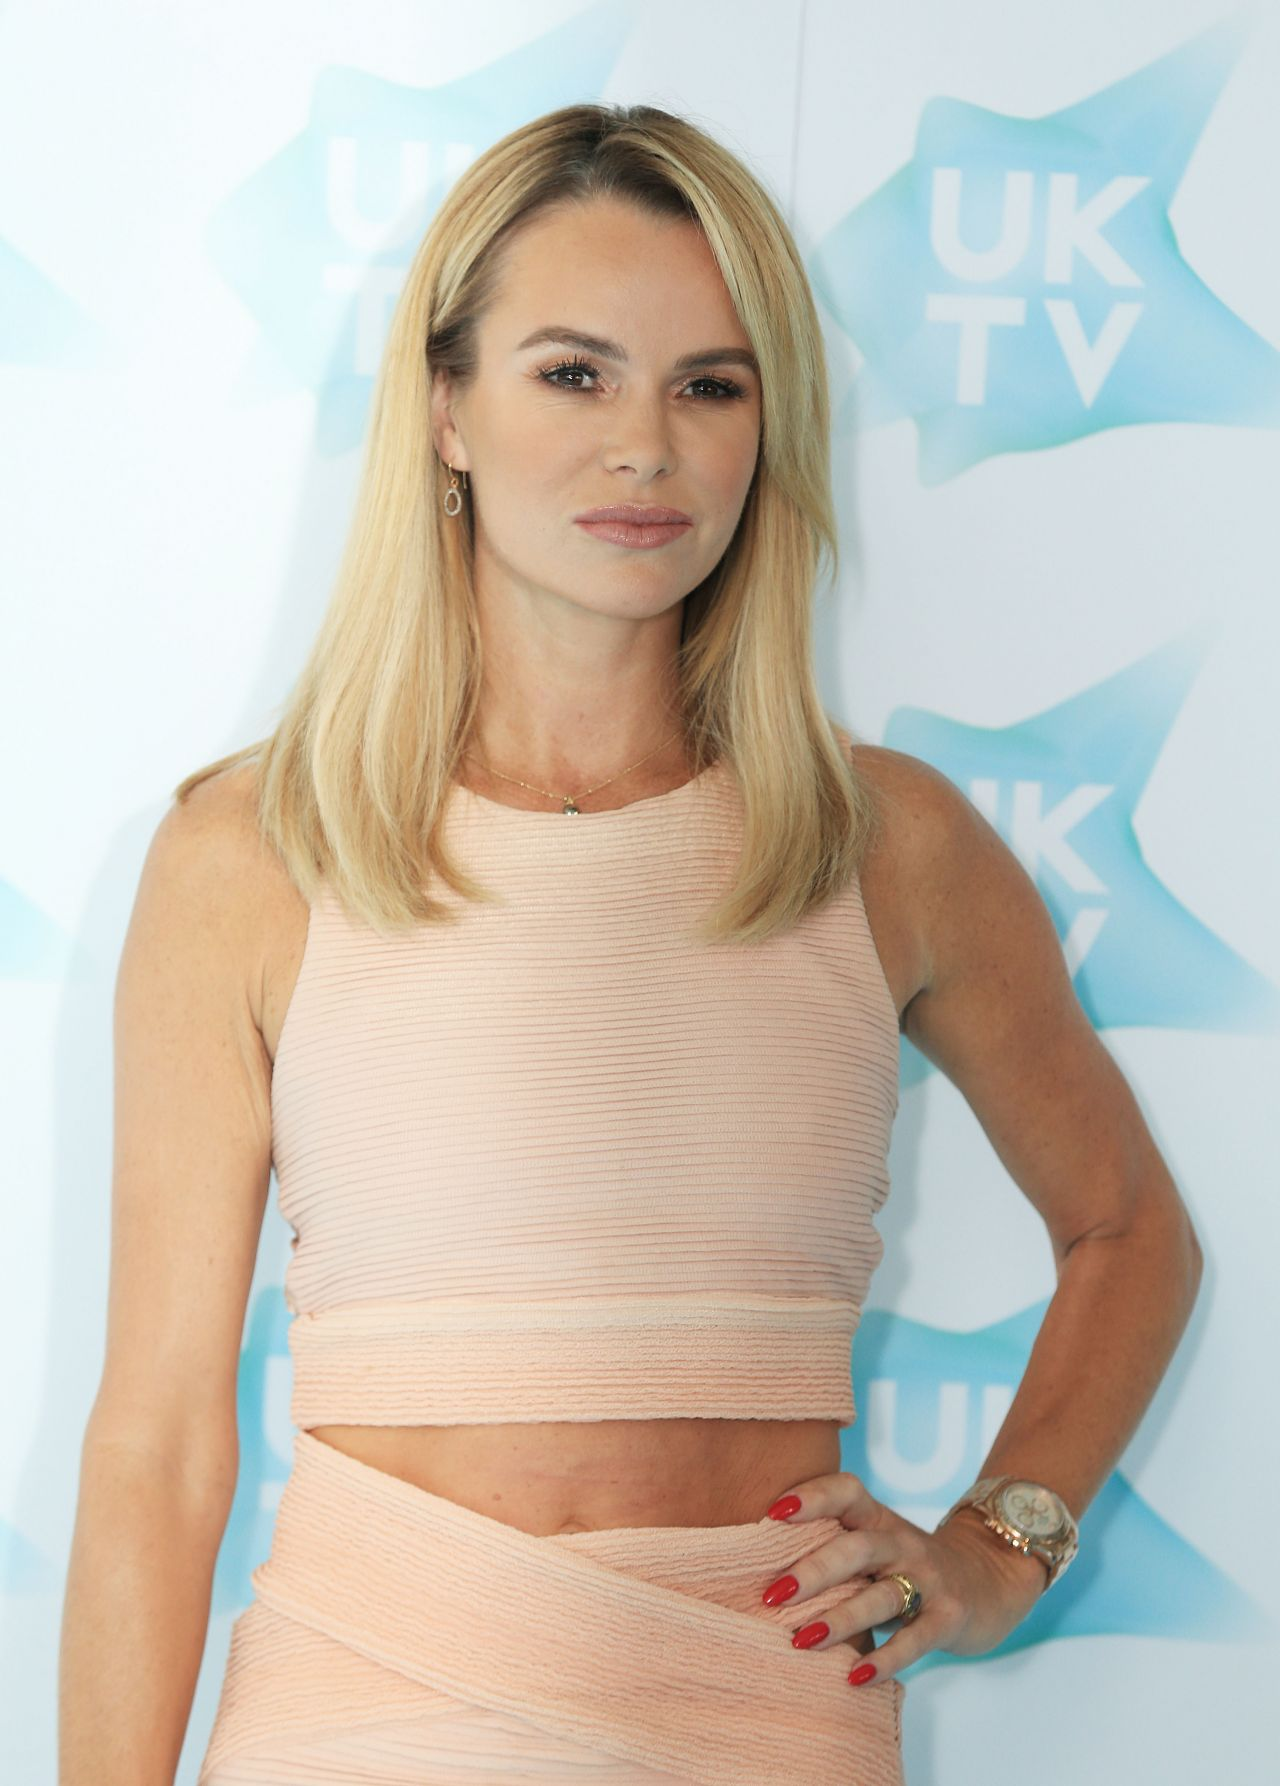 Amanda Holden Uktv Live New Season Launch In London 9